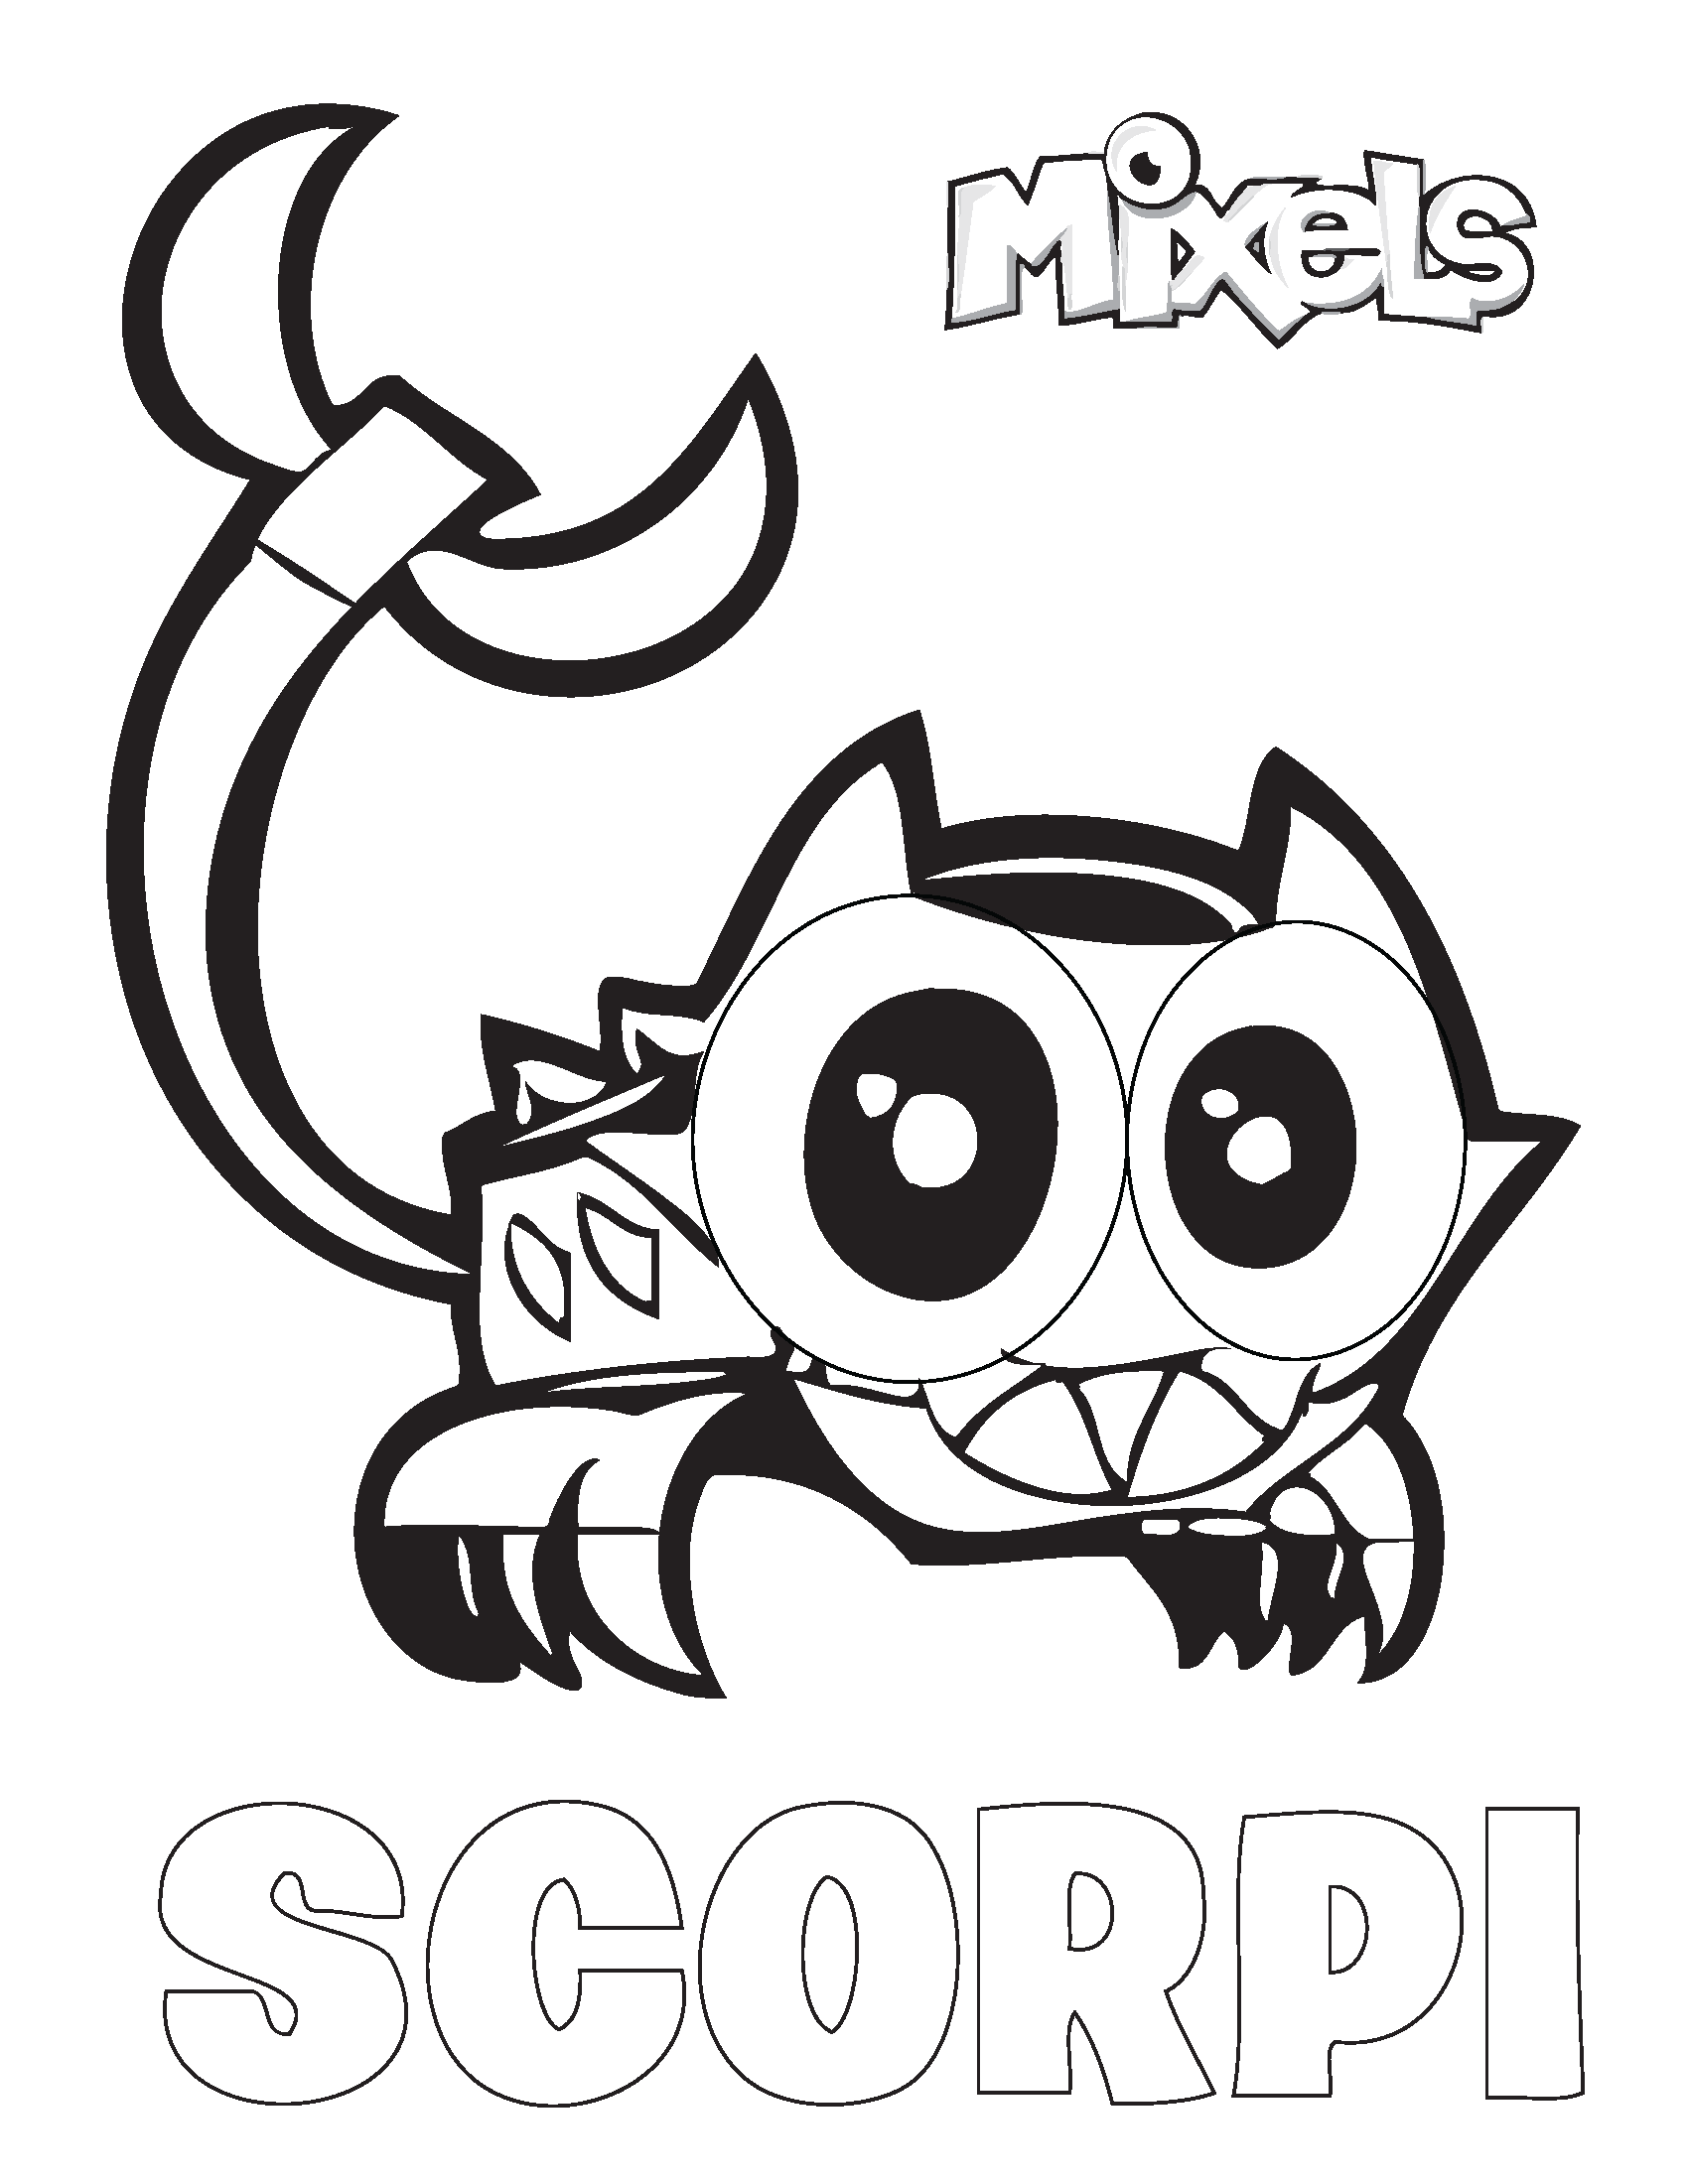 lego mixels coloring pages - spikels tribe my little corner